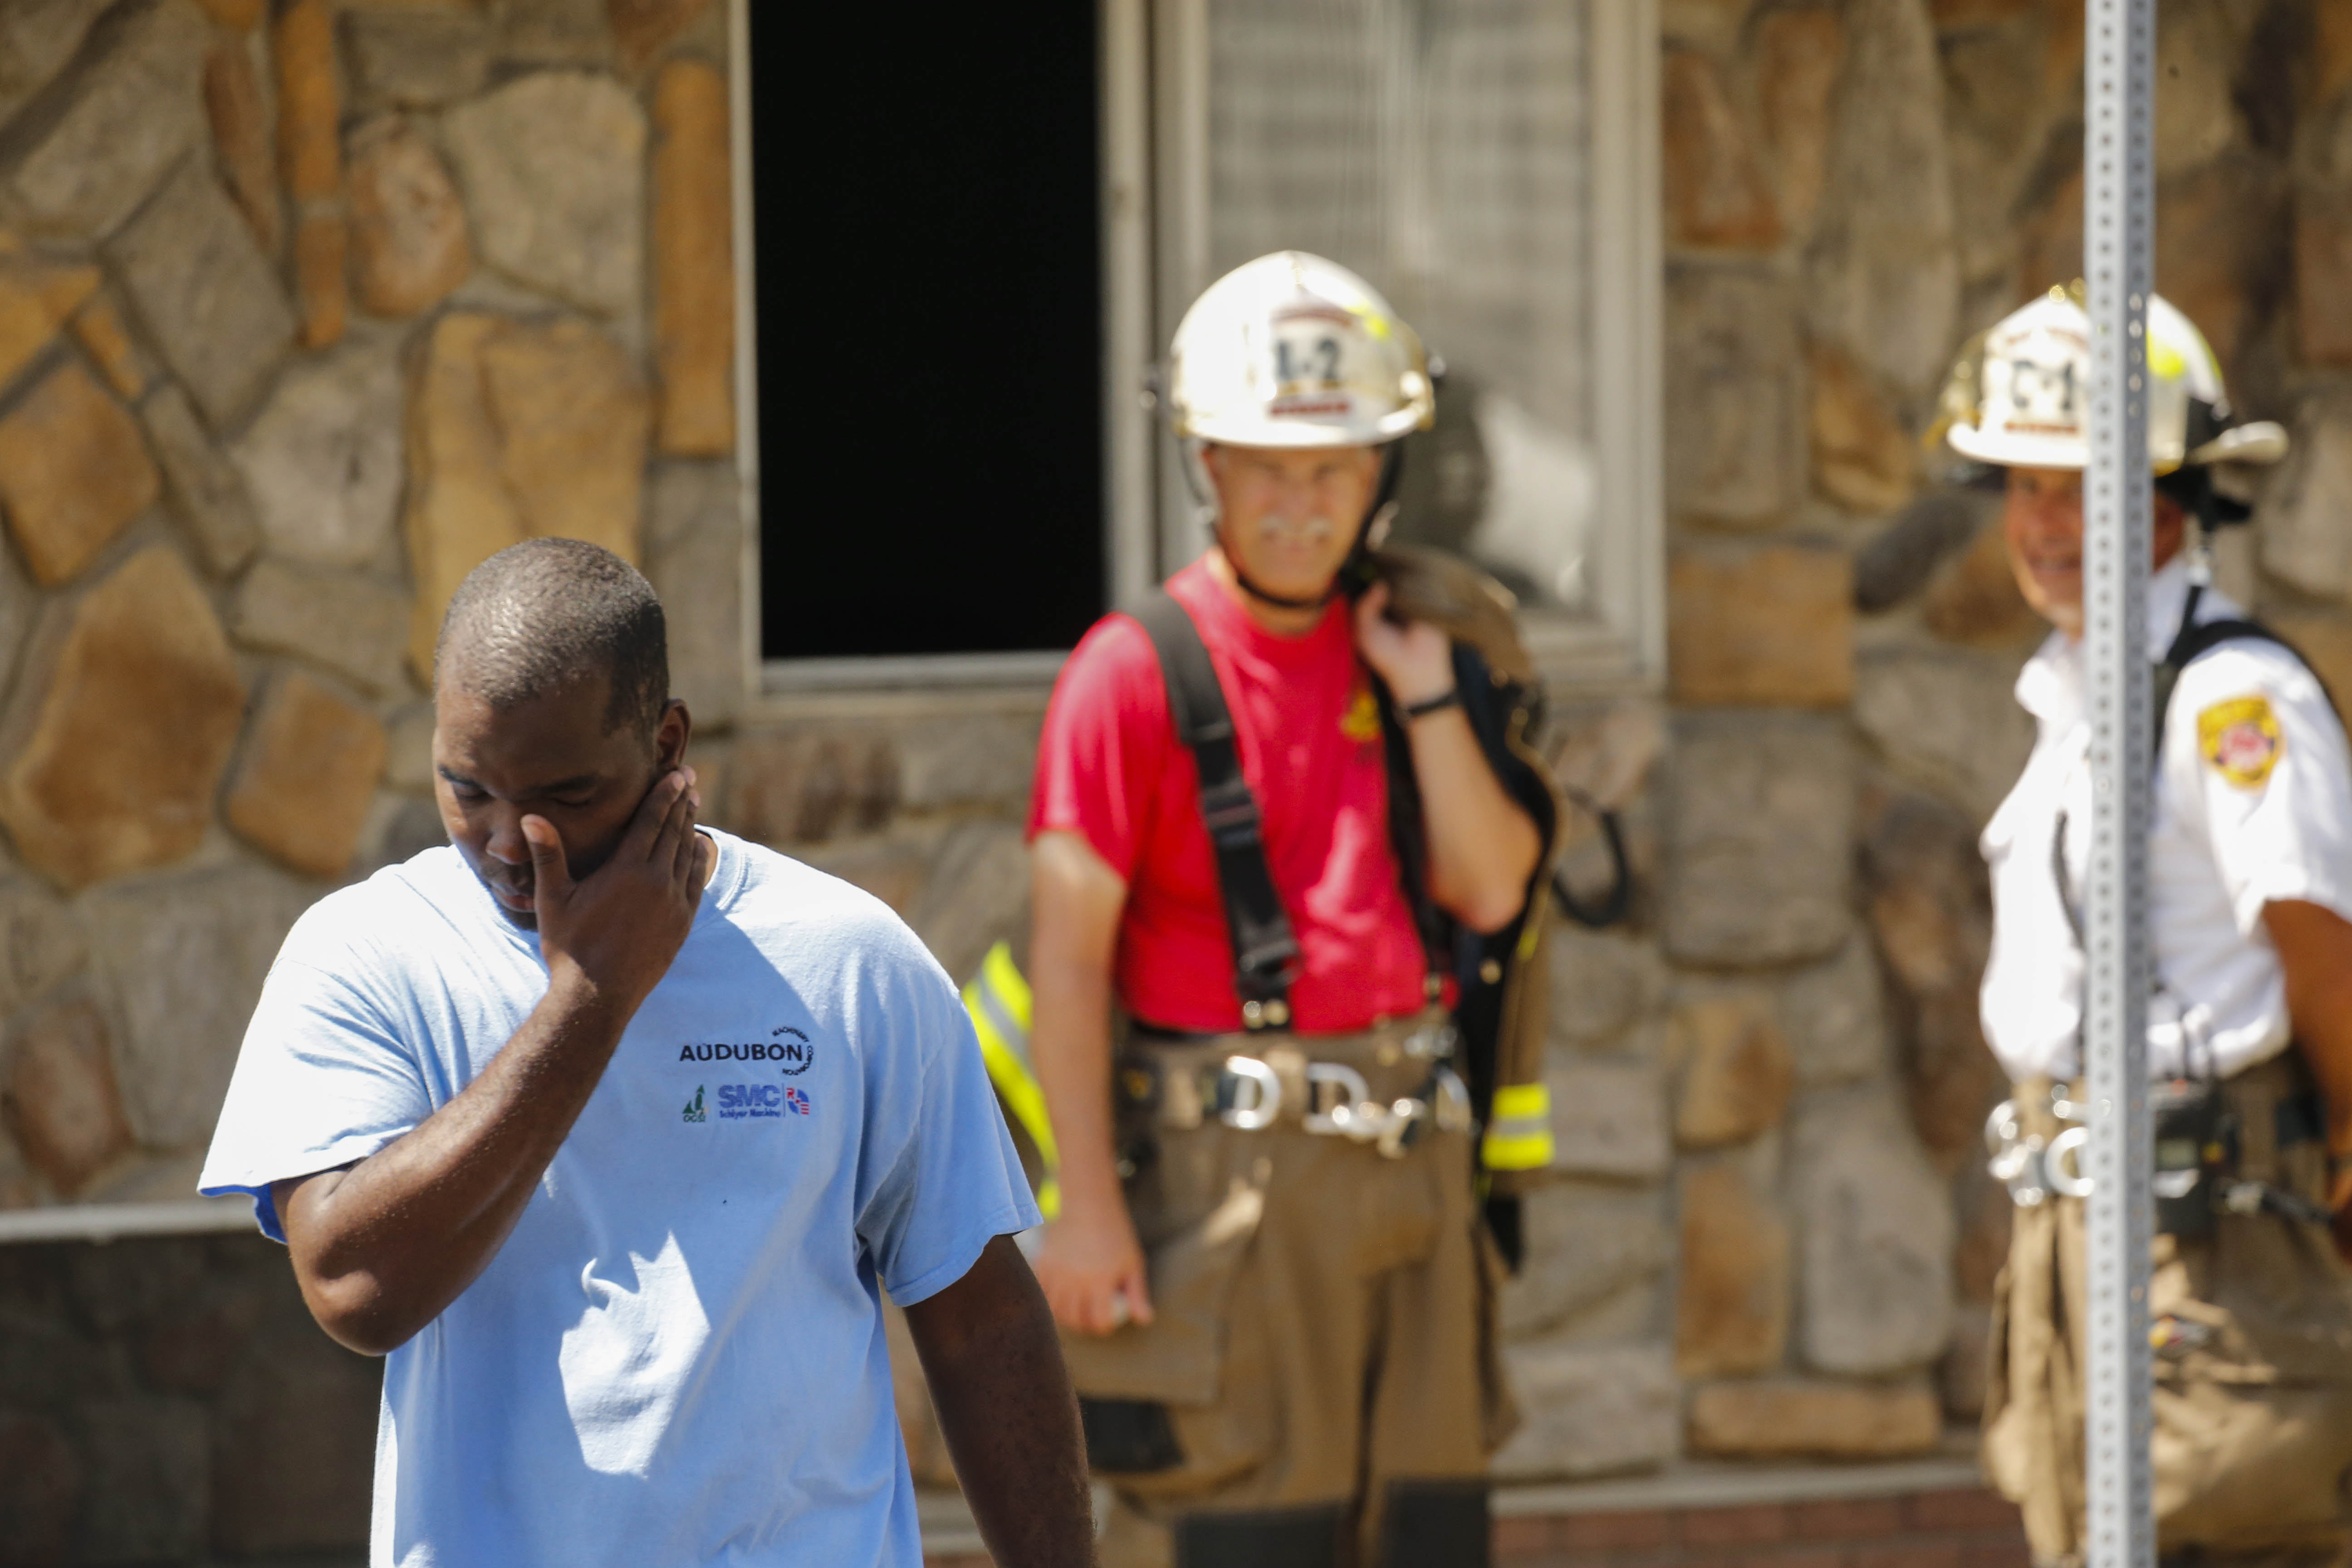 Kenneth Walker reacts as North Tonawanda Police and fire officials investigate the scene of a fire that occurred in his home at Oliver and Felton on  Wednesday, Aug. 3, 2016.  Walker recently received a threatening letter asking him to leave the Gratwick Hose fire department where he is the only black member.  (Derek Gee/Buffalo News)